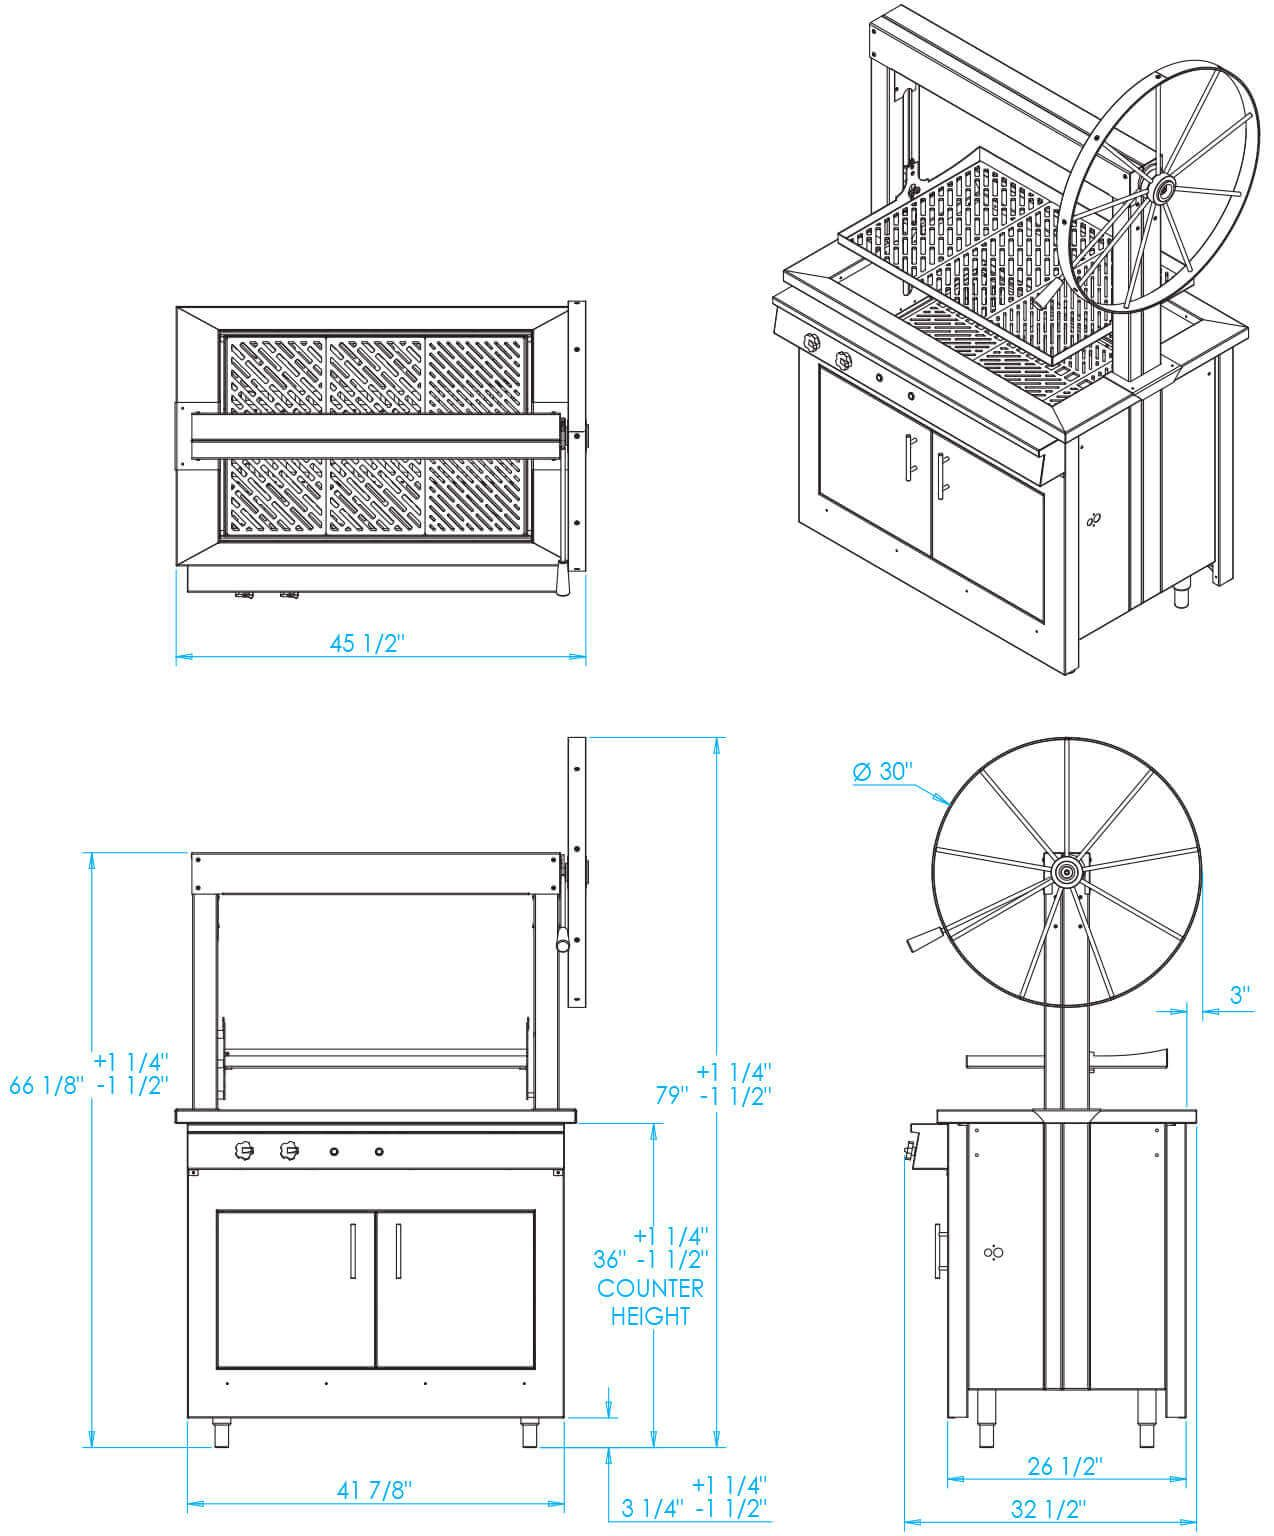 K750gb Gaucho Grill Dimensions Outdoor Kitchen Design Built In Grill Diy Grill